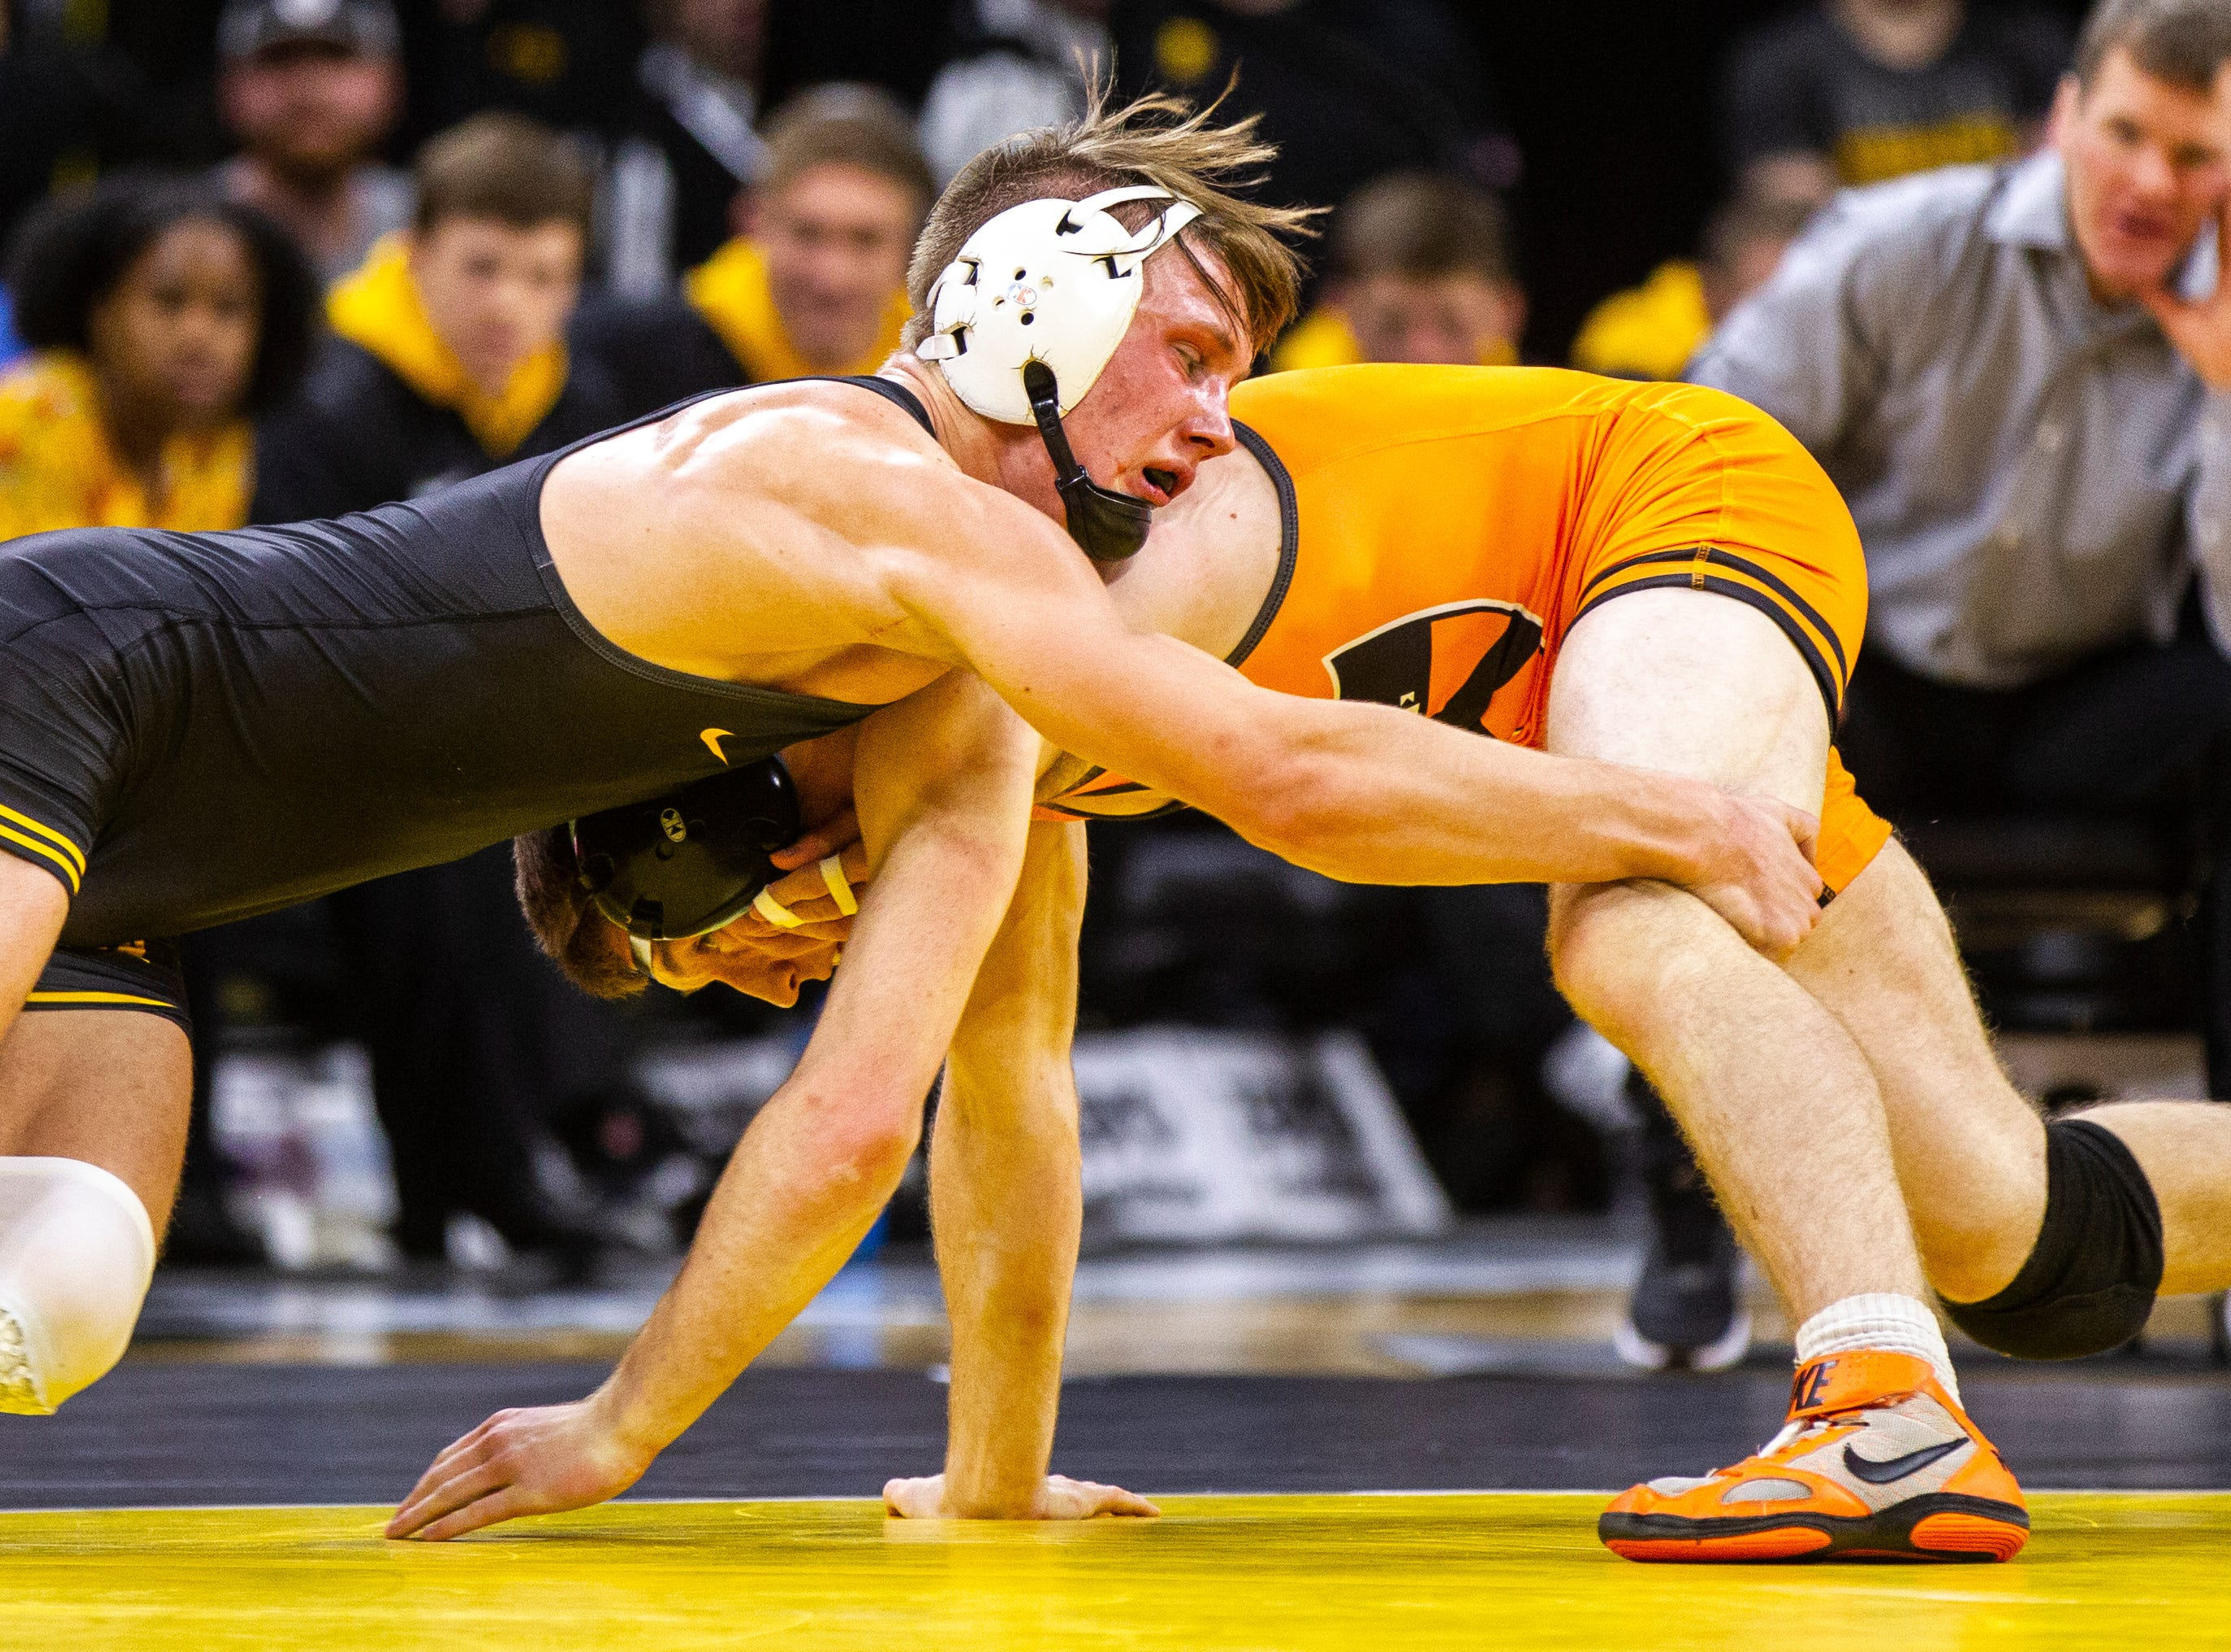 Iowa's Max Murin (left) wrestles Princeton's Marshall Keller at 141 during an NCAA wrestle dual on Friday, Nov. 16, 2018, at Carver-Hawkeye Arena in Iowa City.